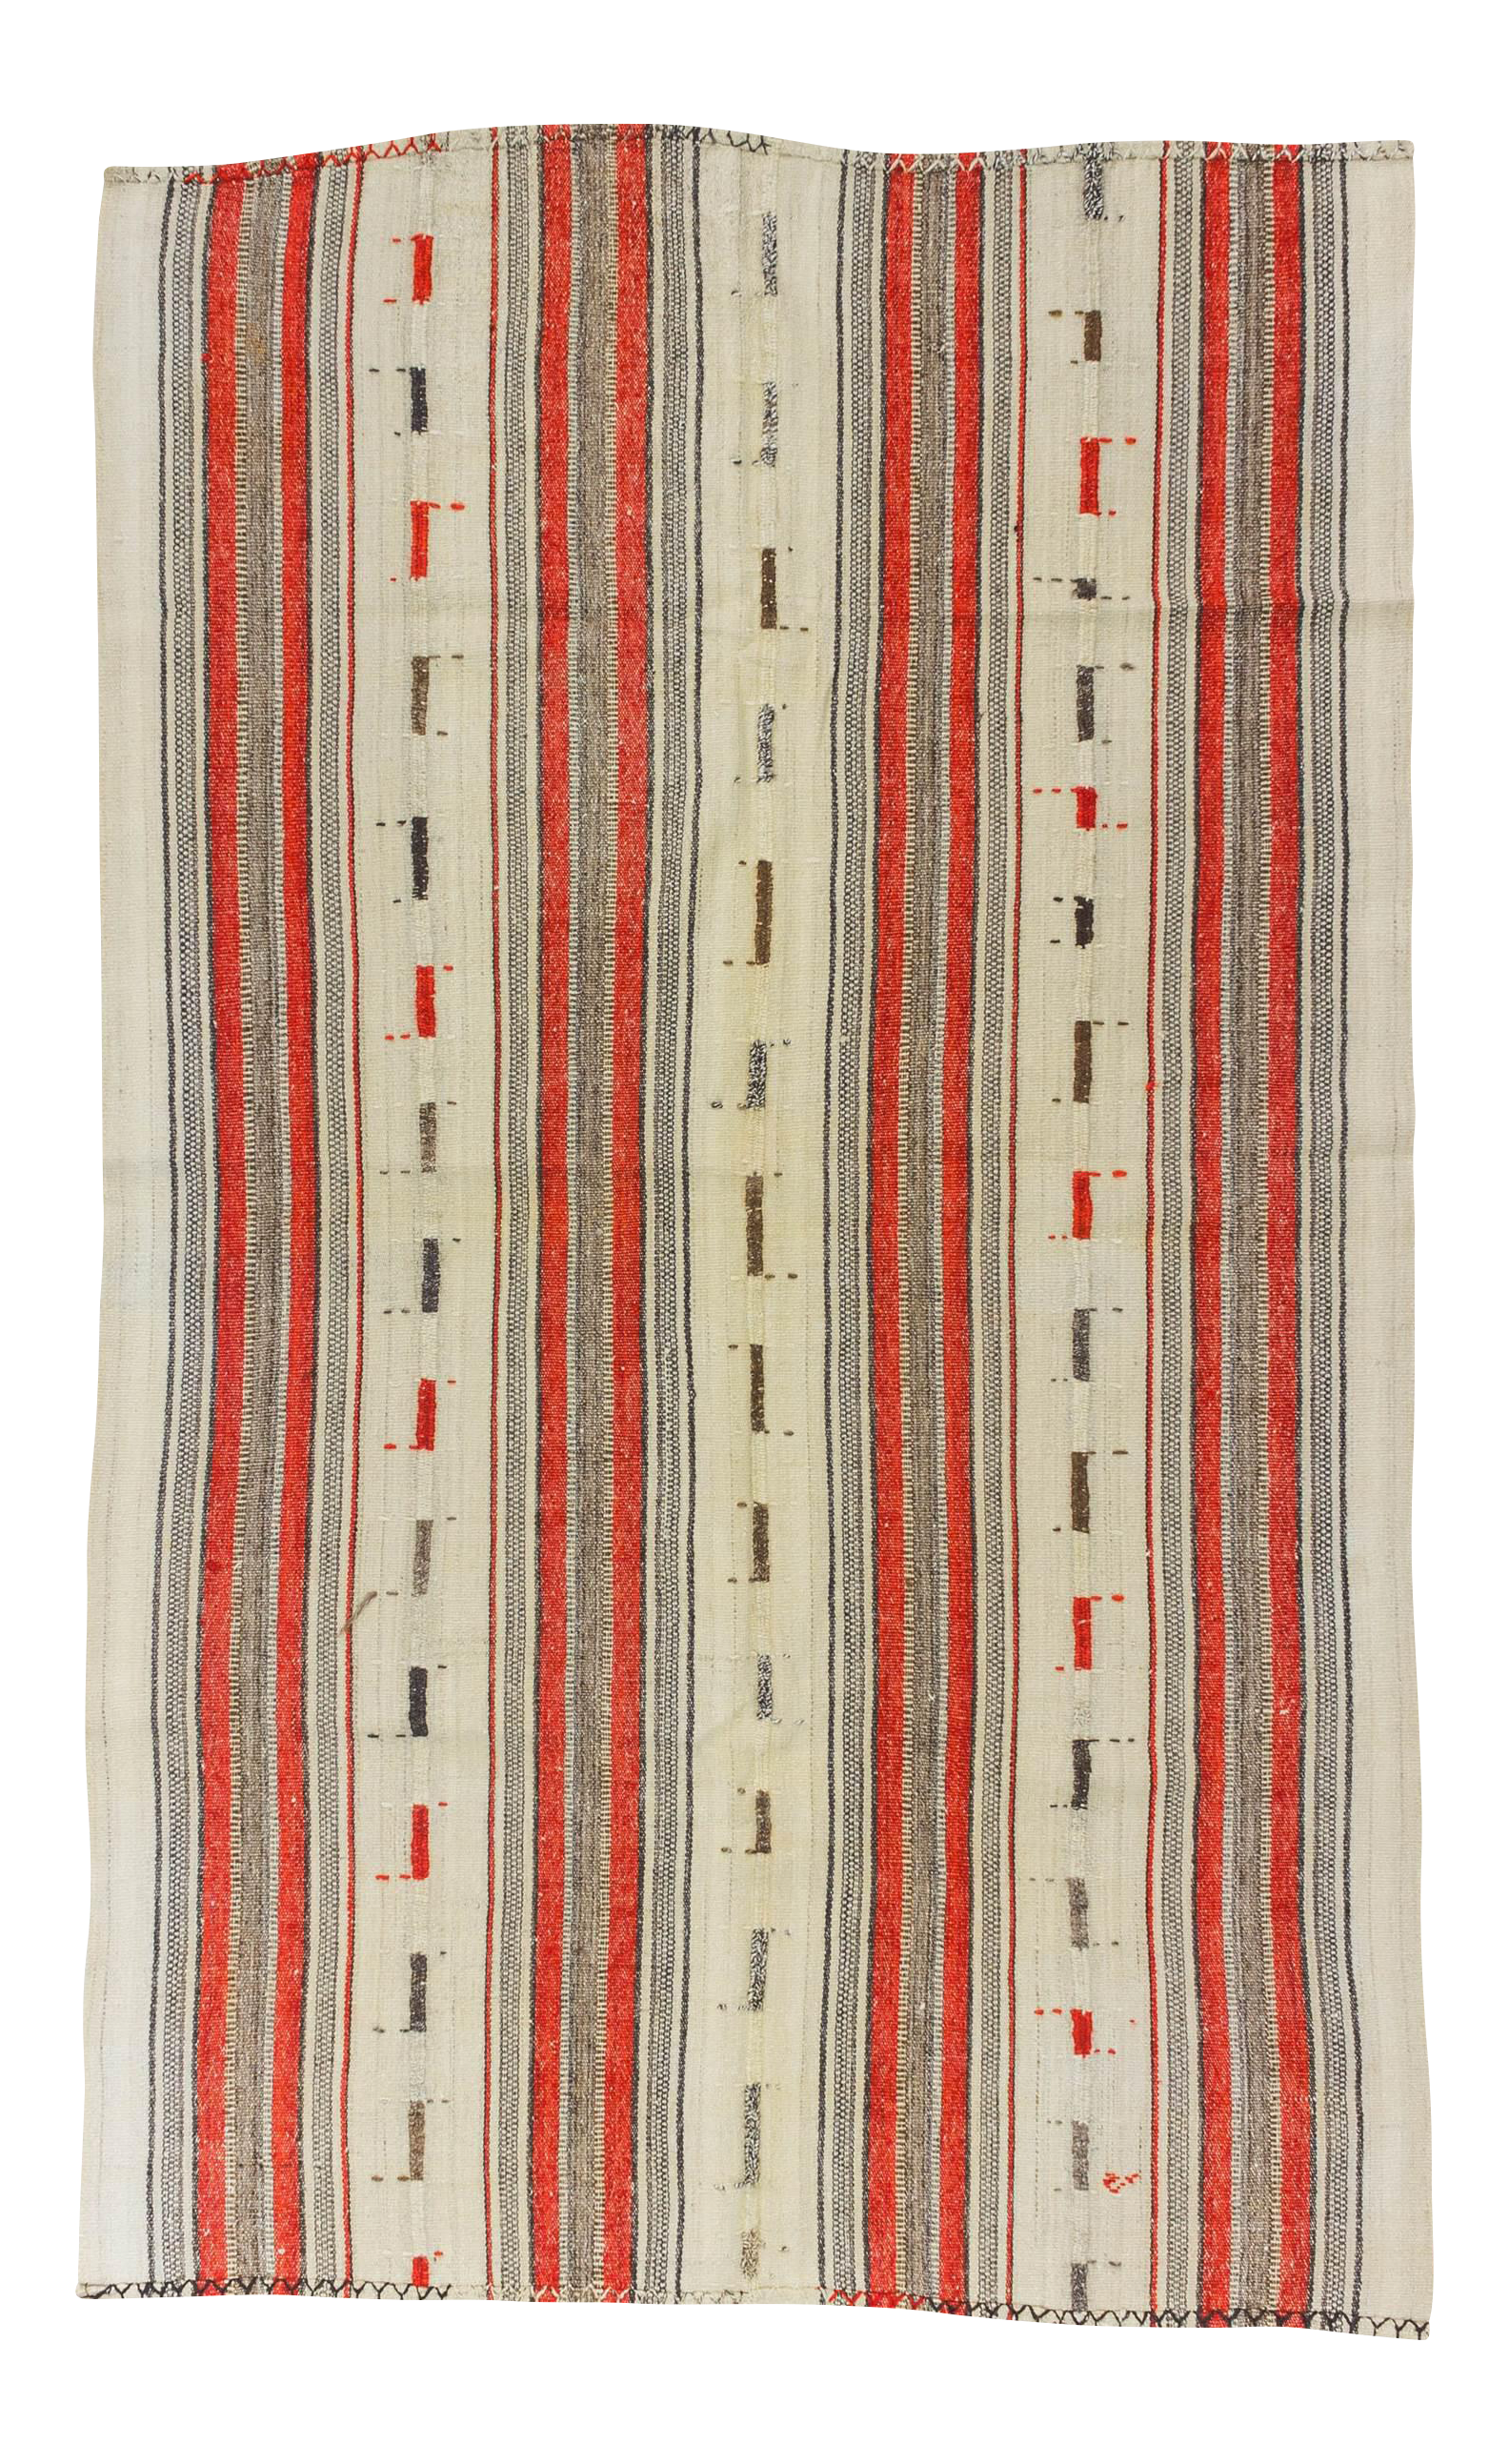 Hand-woven large striped throw rugs